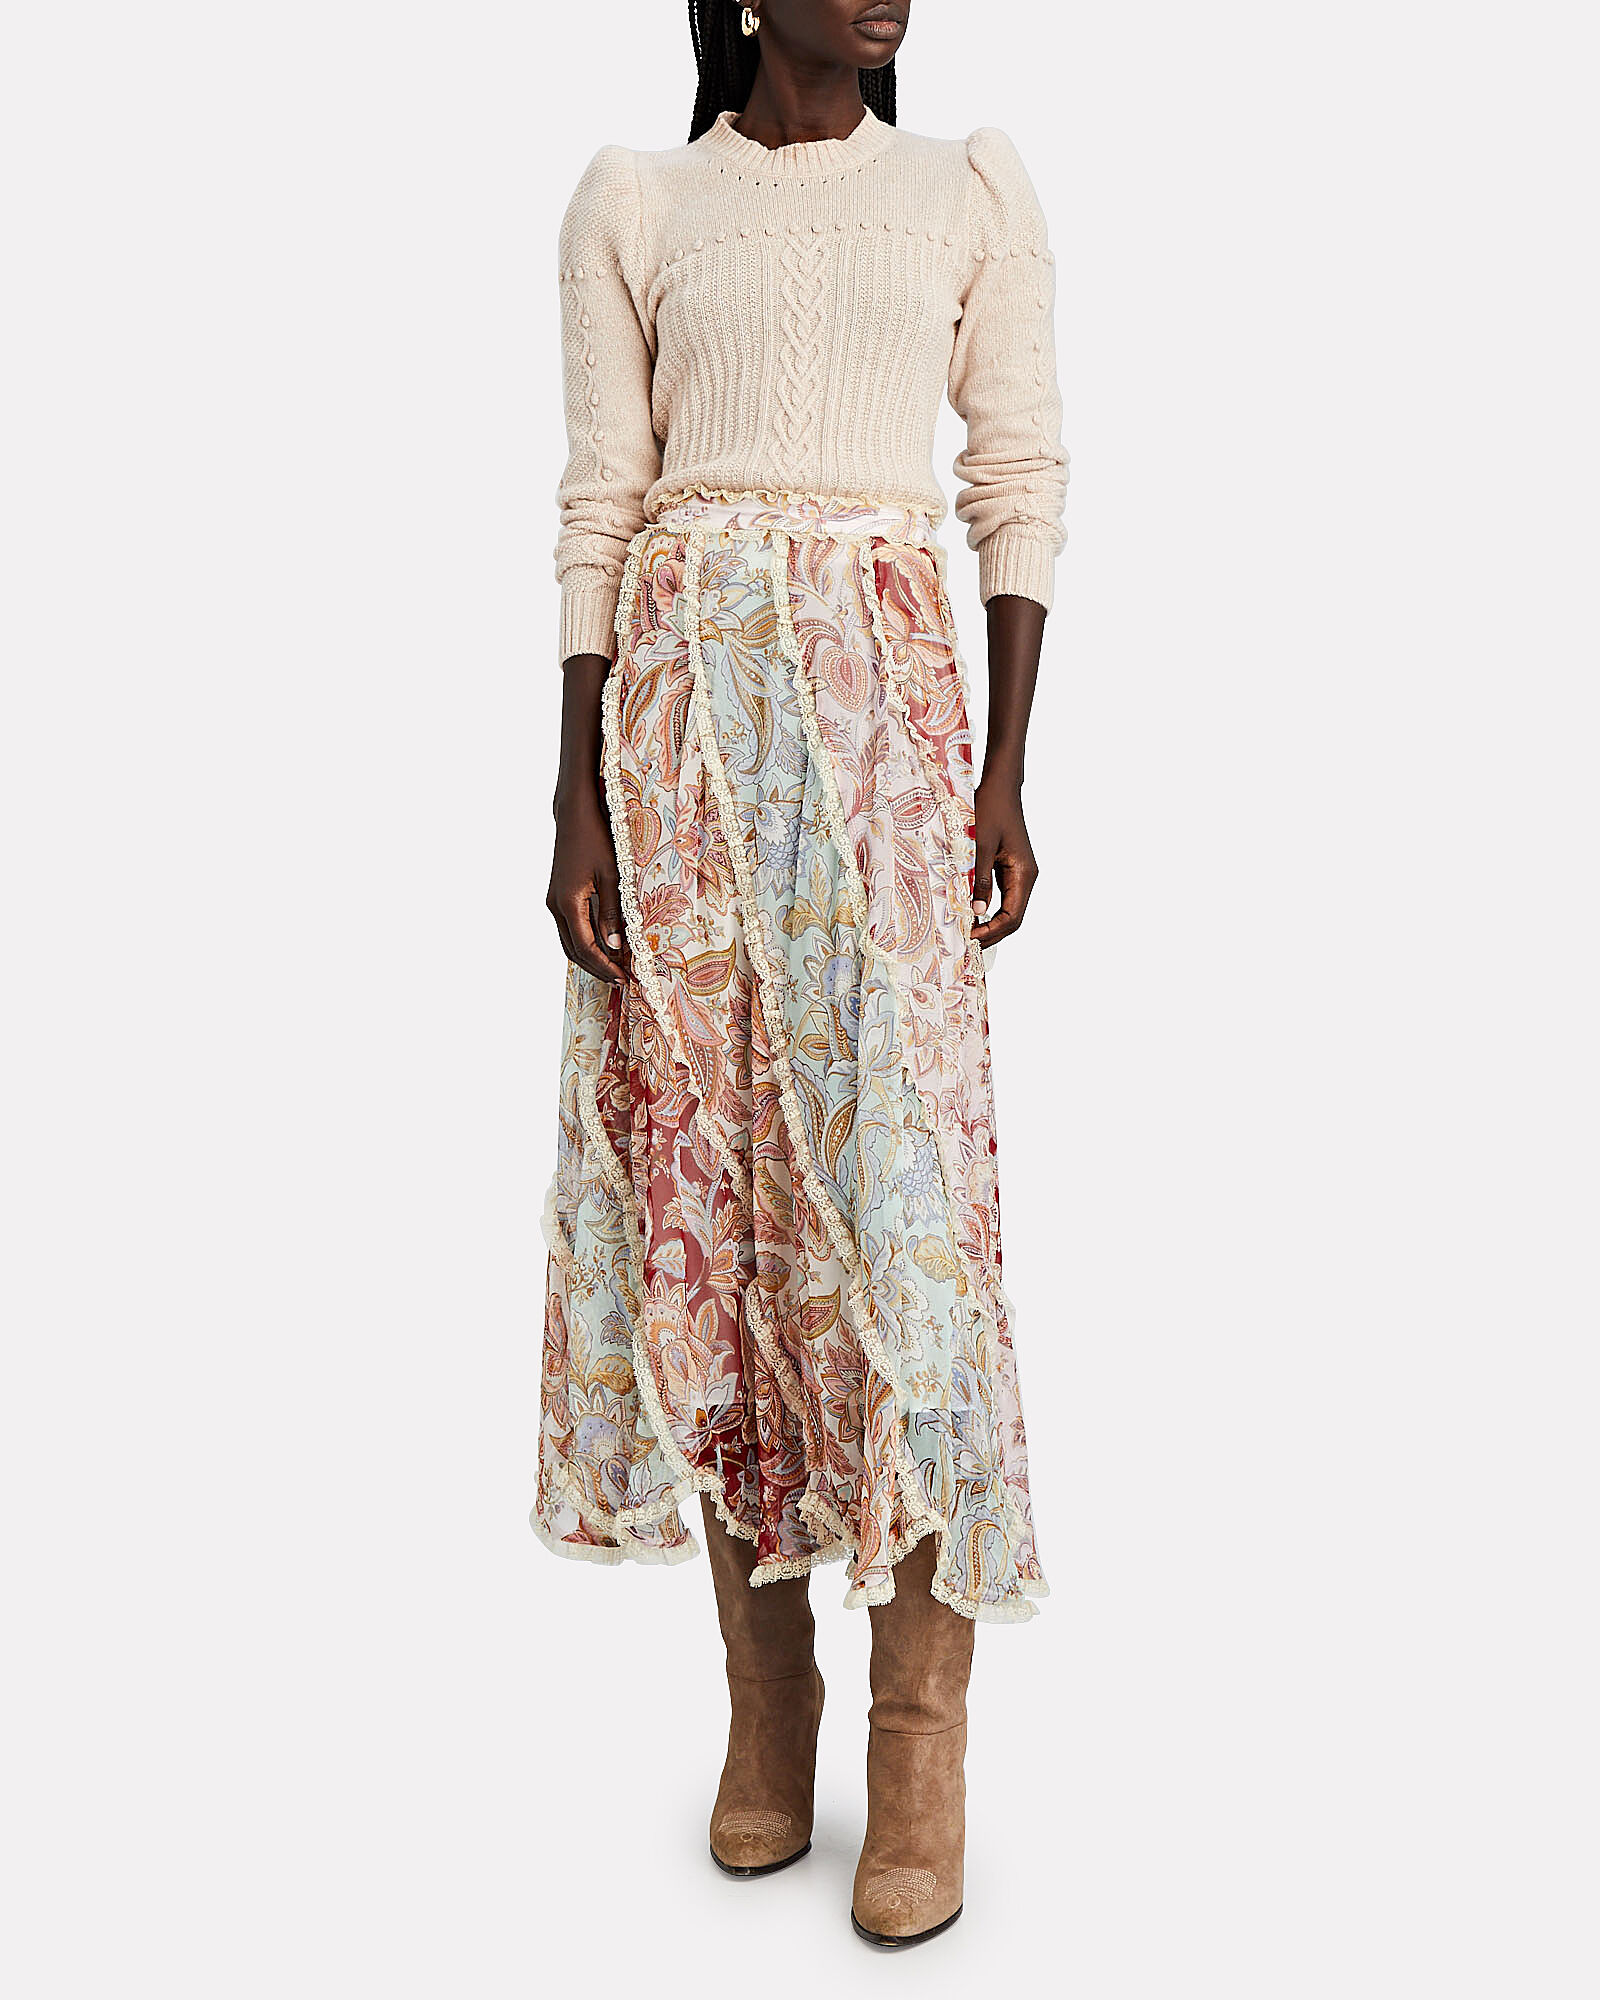 Ladybeetle Silk Floral Spliced Midi Skirt, LIGHT BLUE/BURGUNDY, hi-res